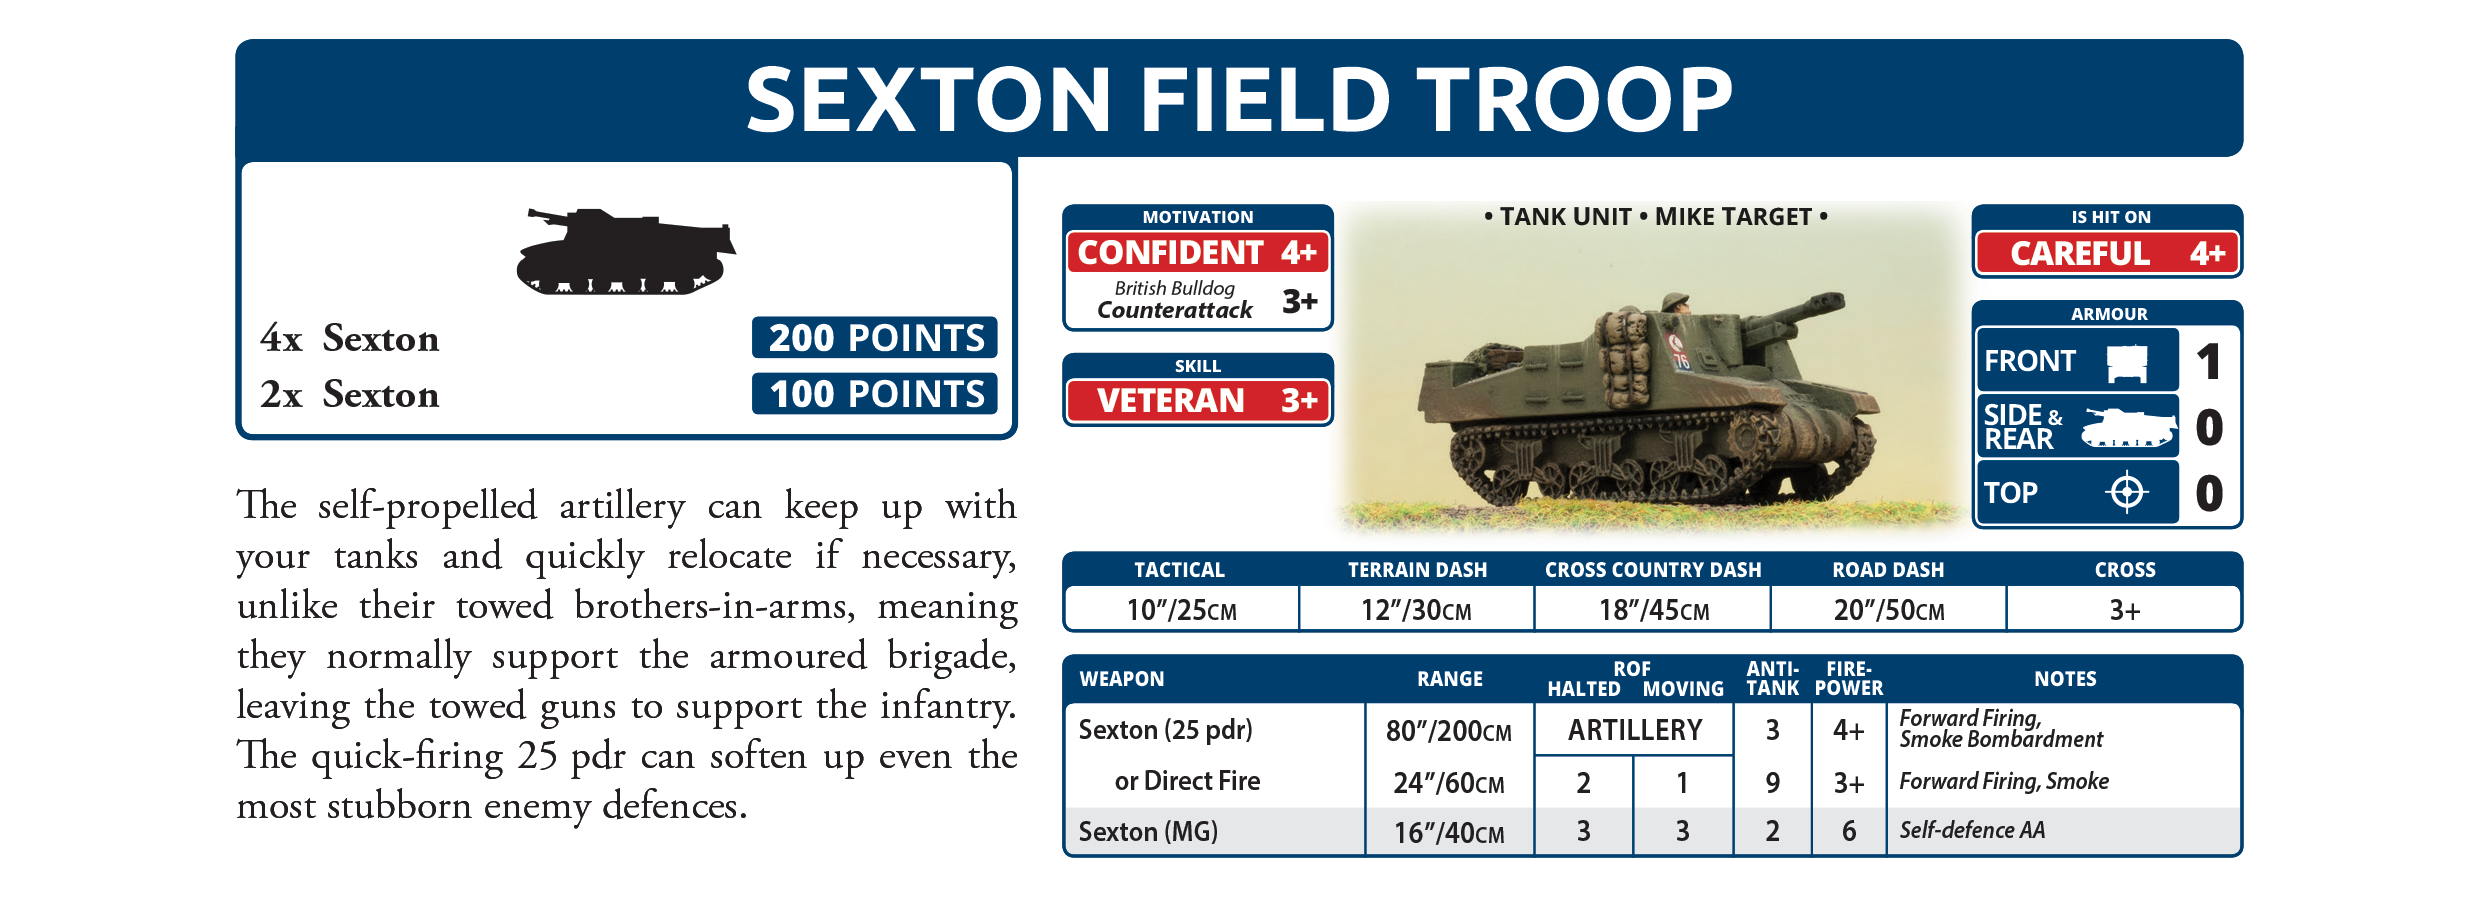 Sexton Field Troop